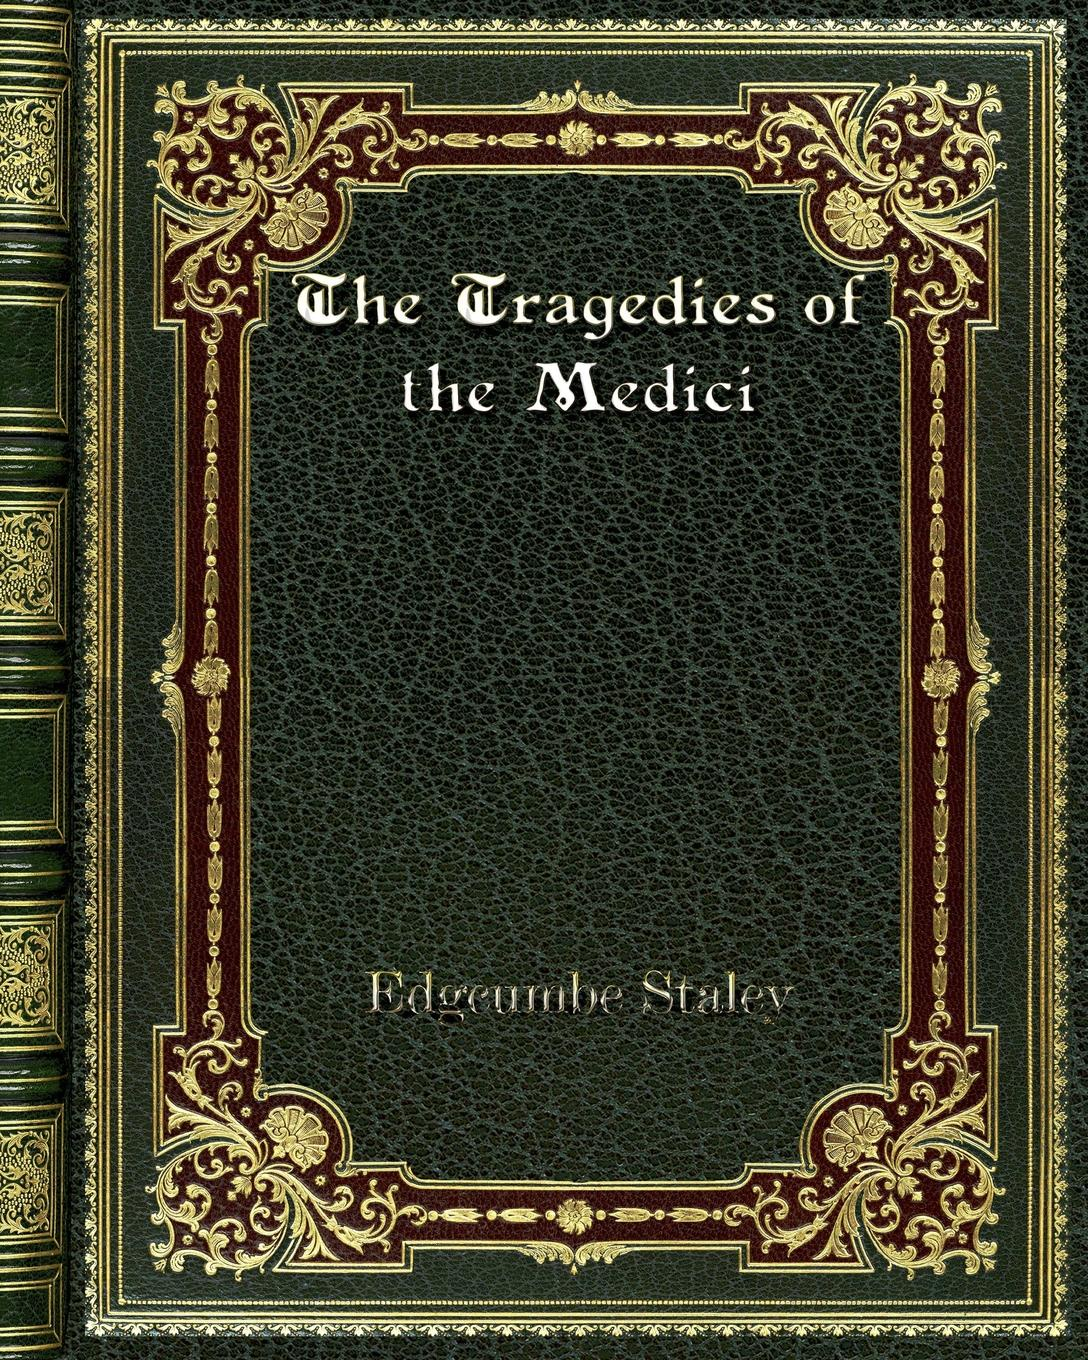 Edgcumbe Staley The Tragedies of the Medici